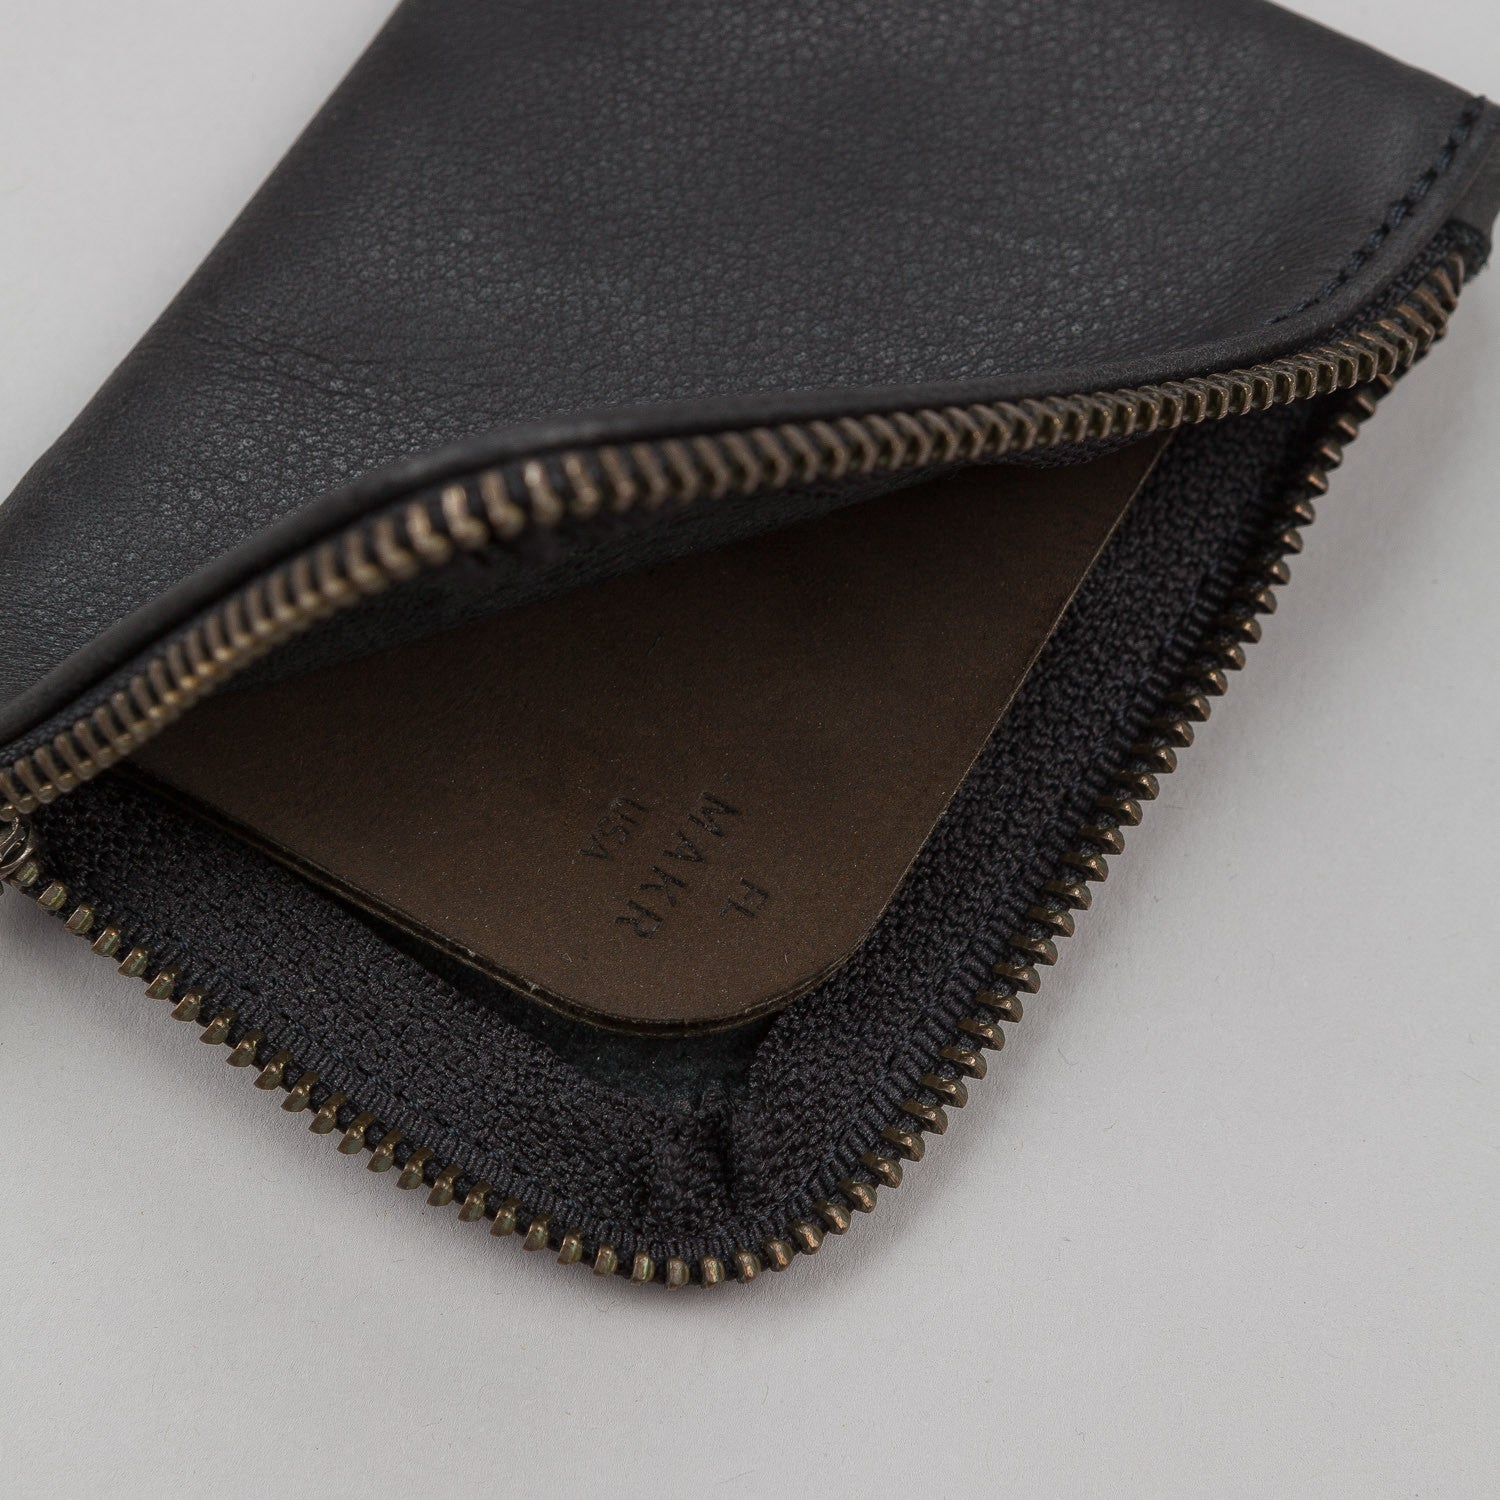 Makr Zip Slim Leather Wallet - Black